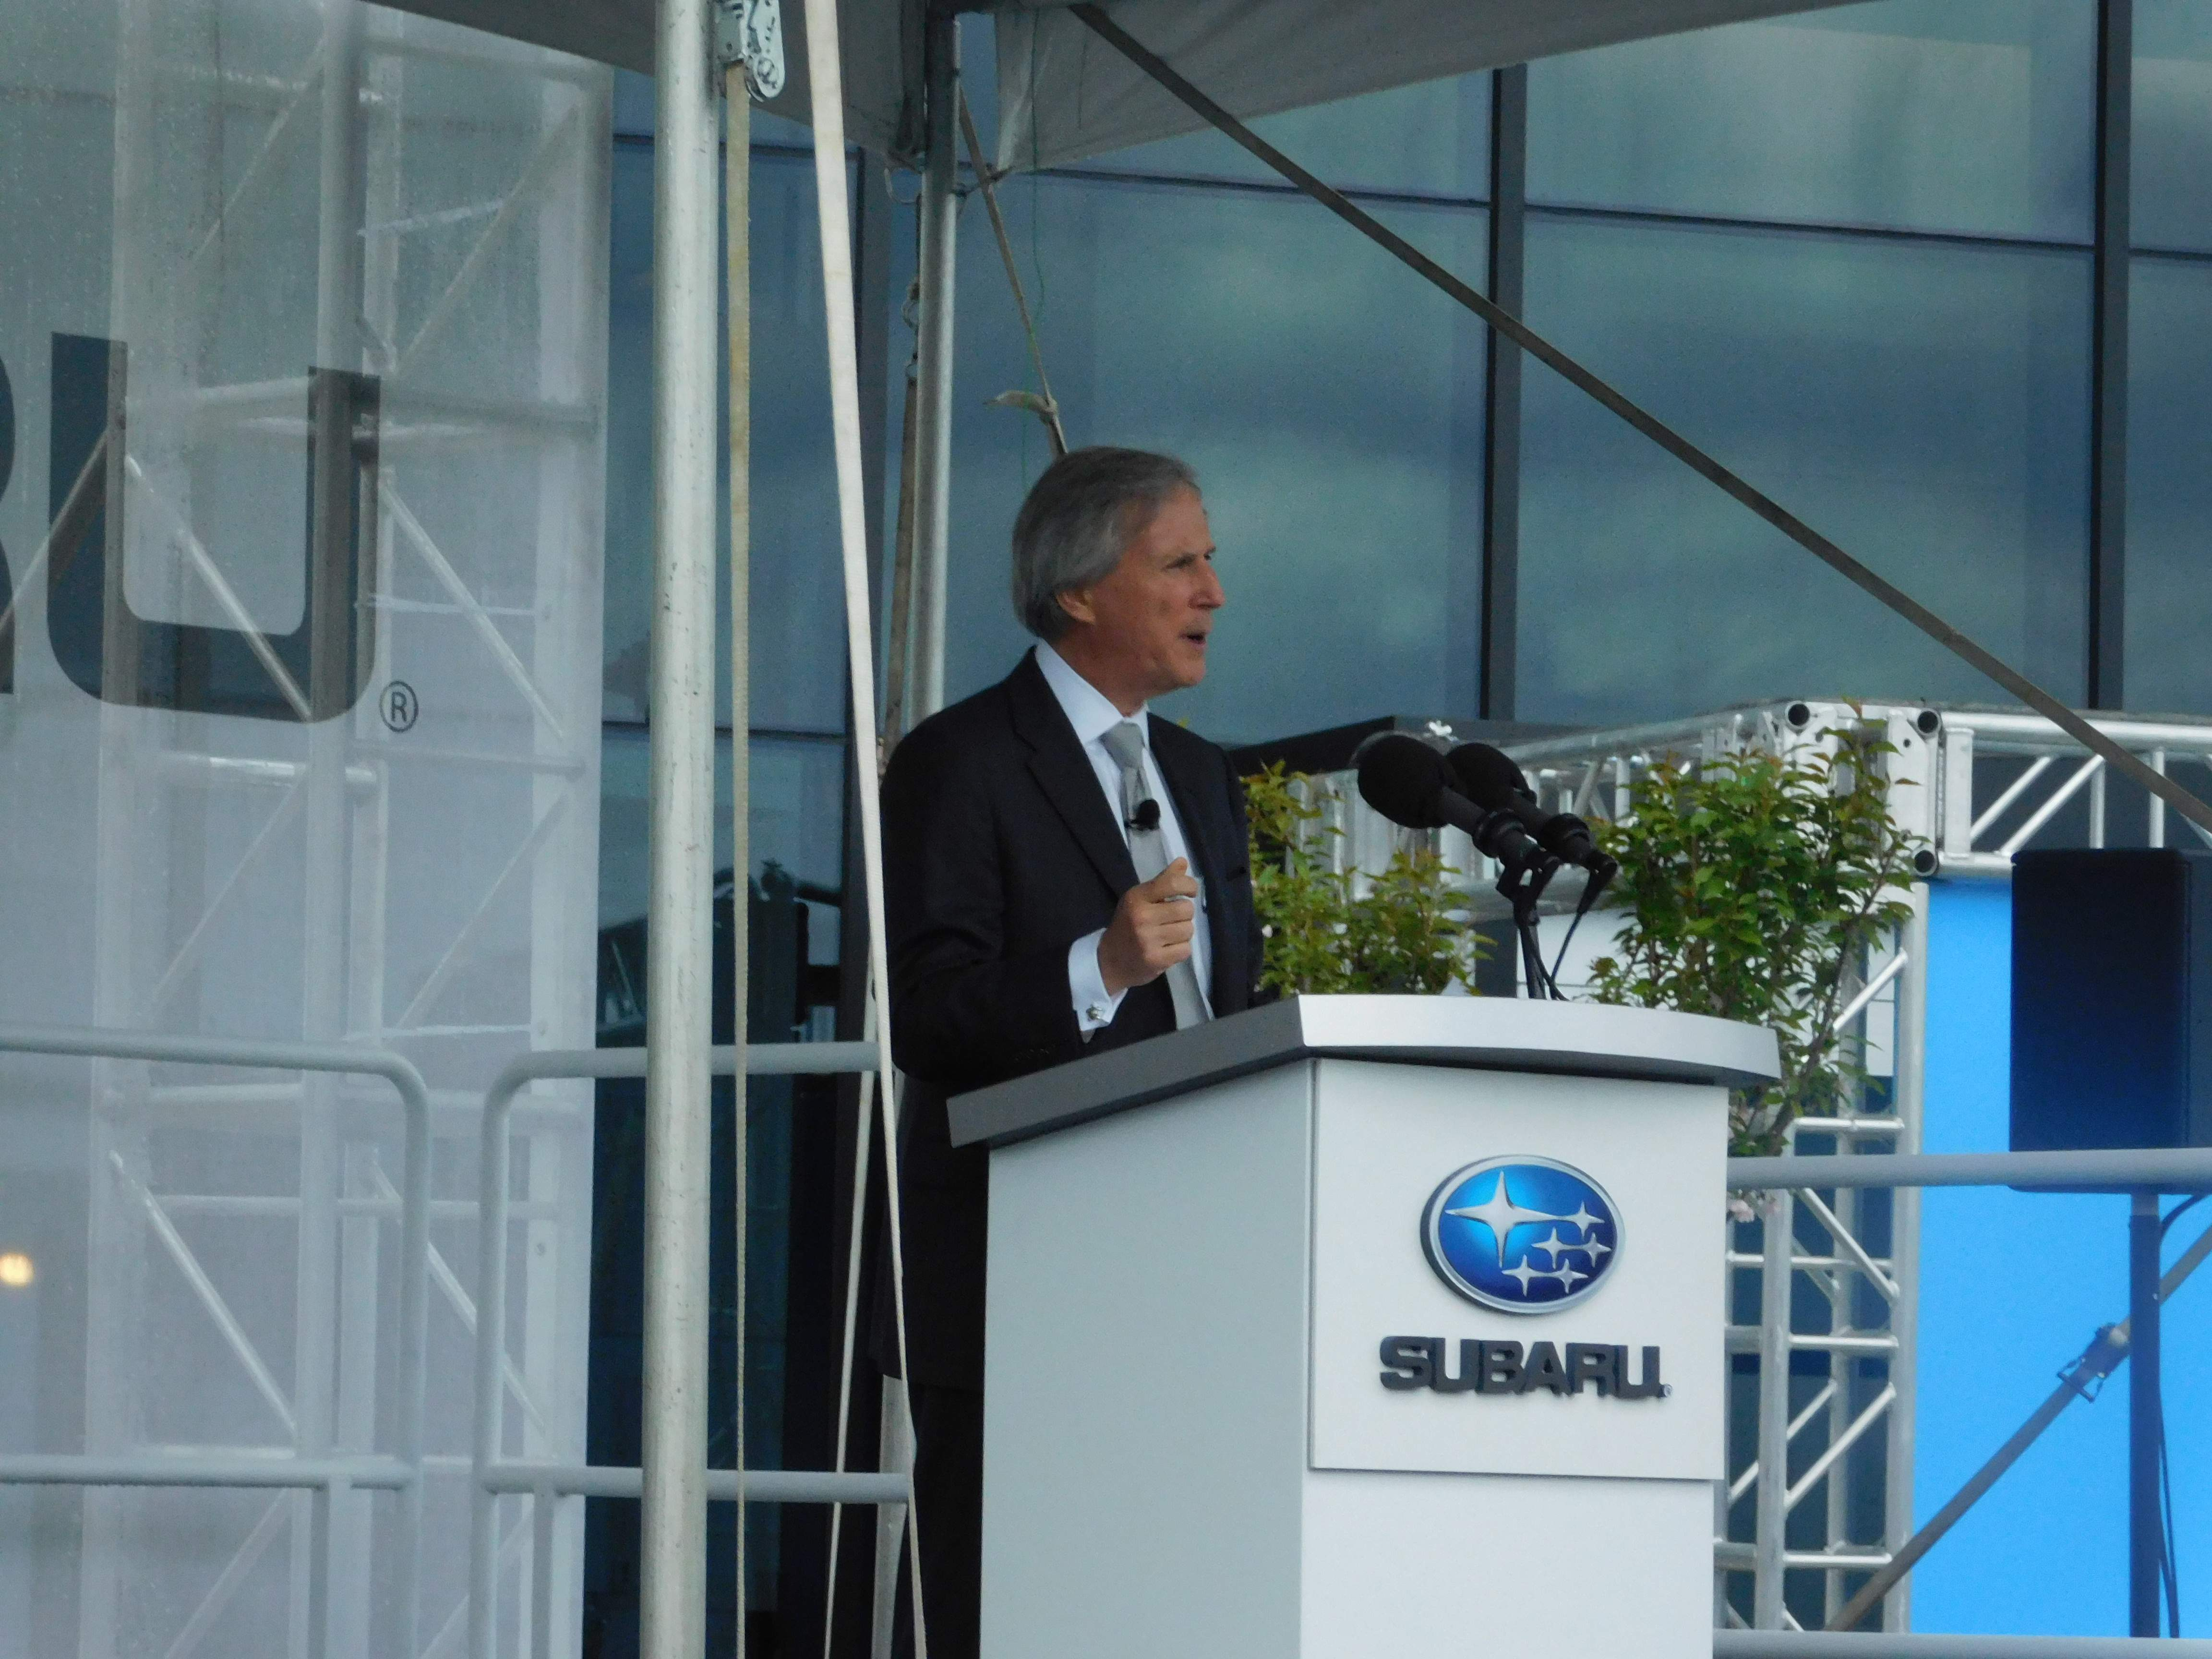 Brandywine Realty Trust CEO Gerard Sweeney at the grand opening of Subaru of America's corporate headquarters in Camden.